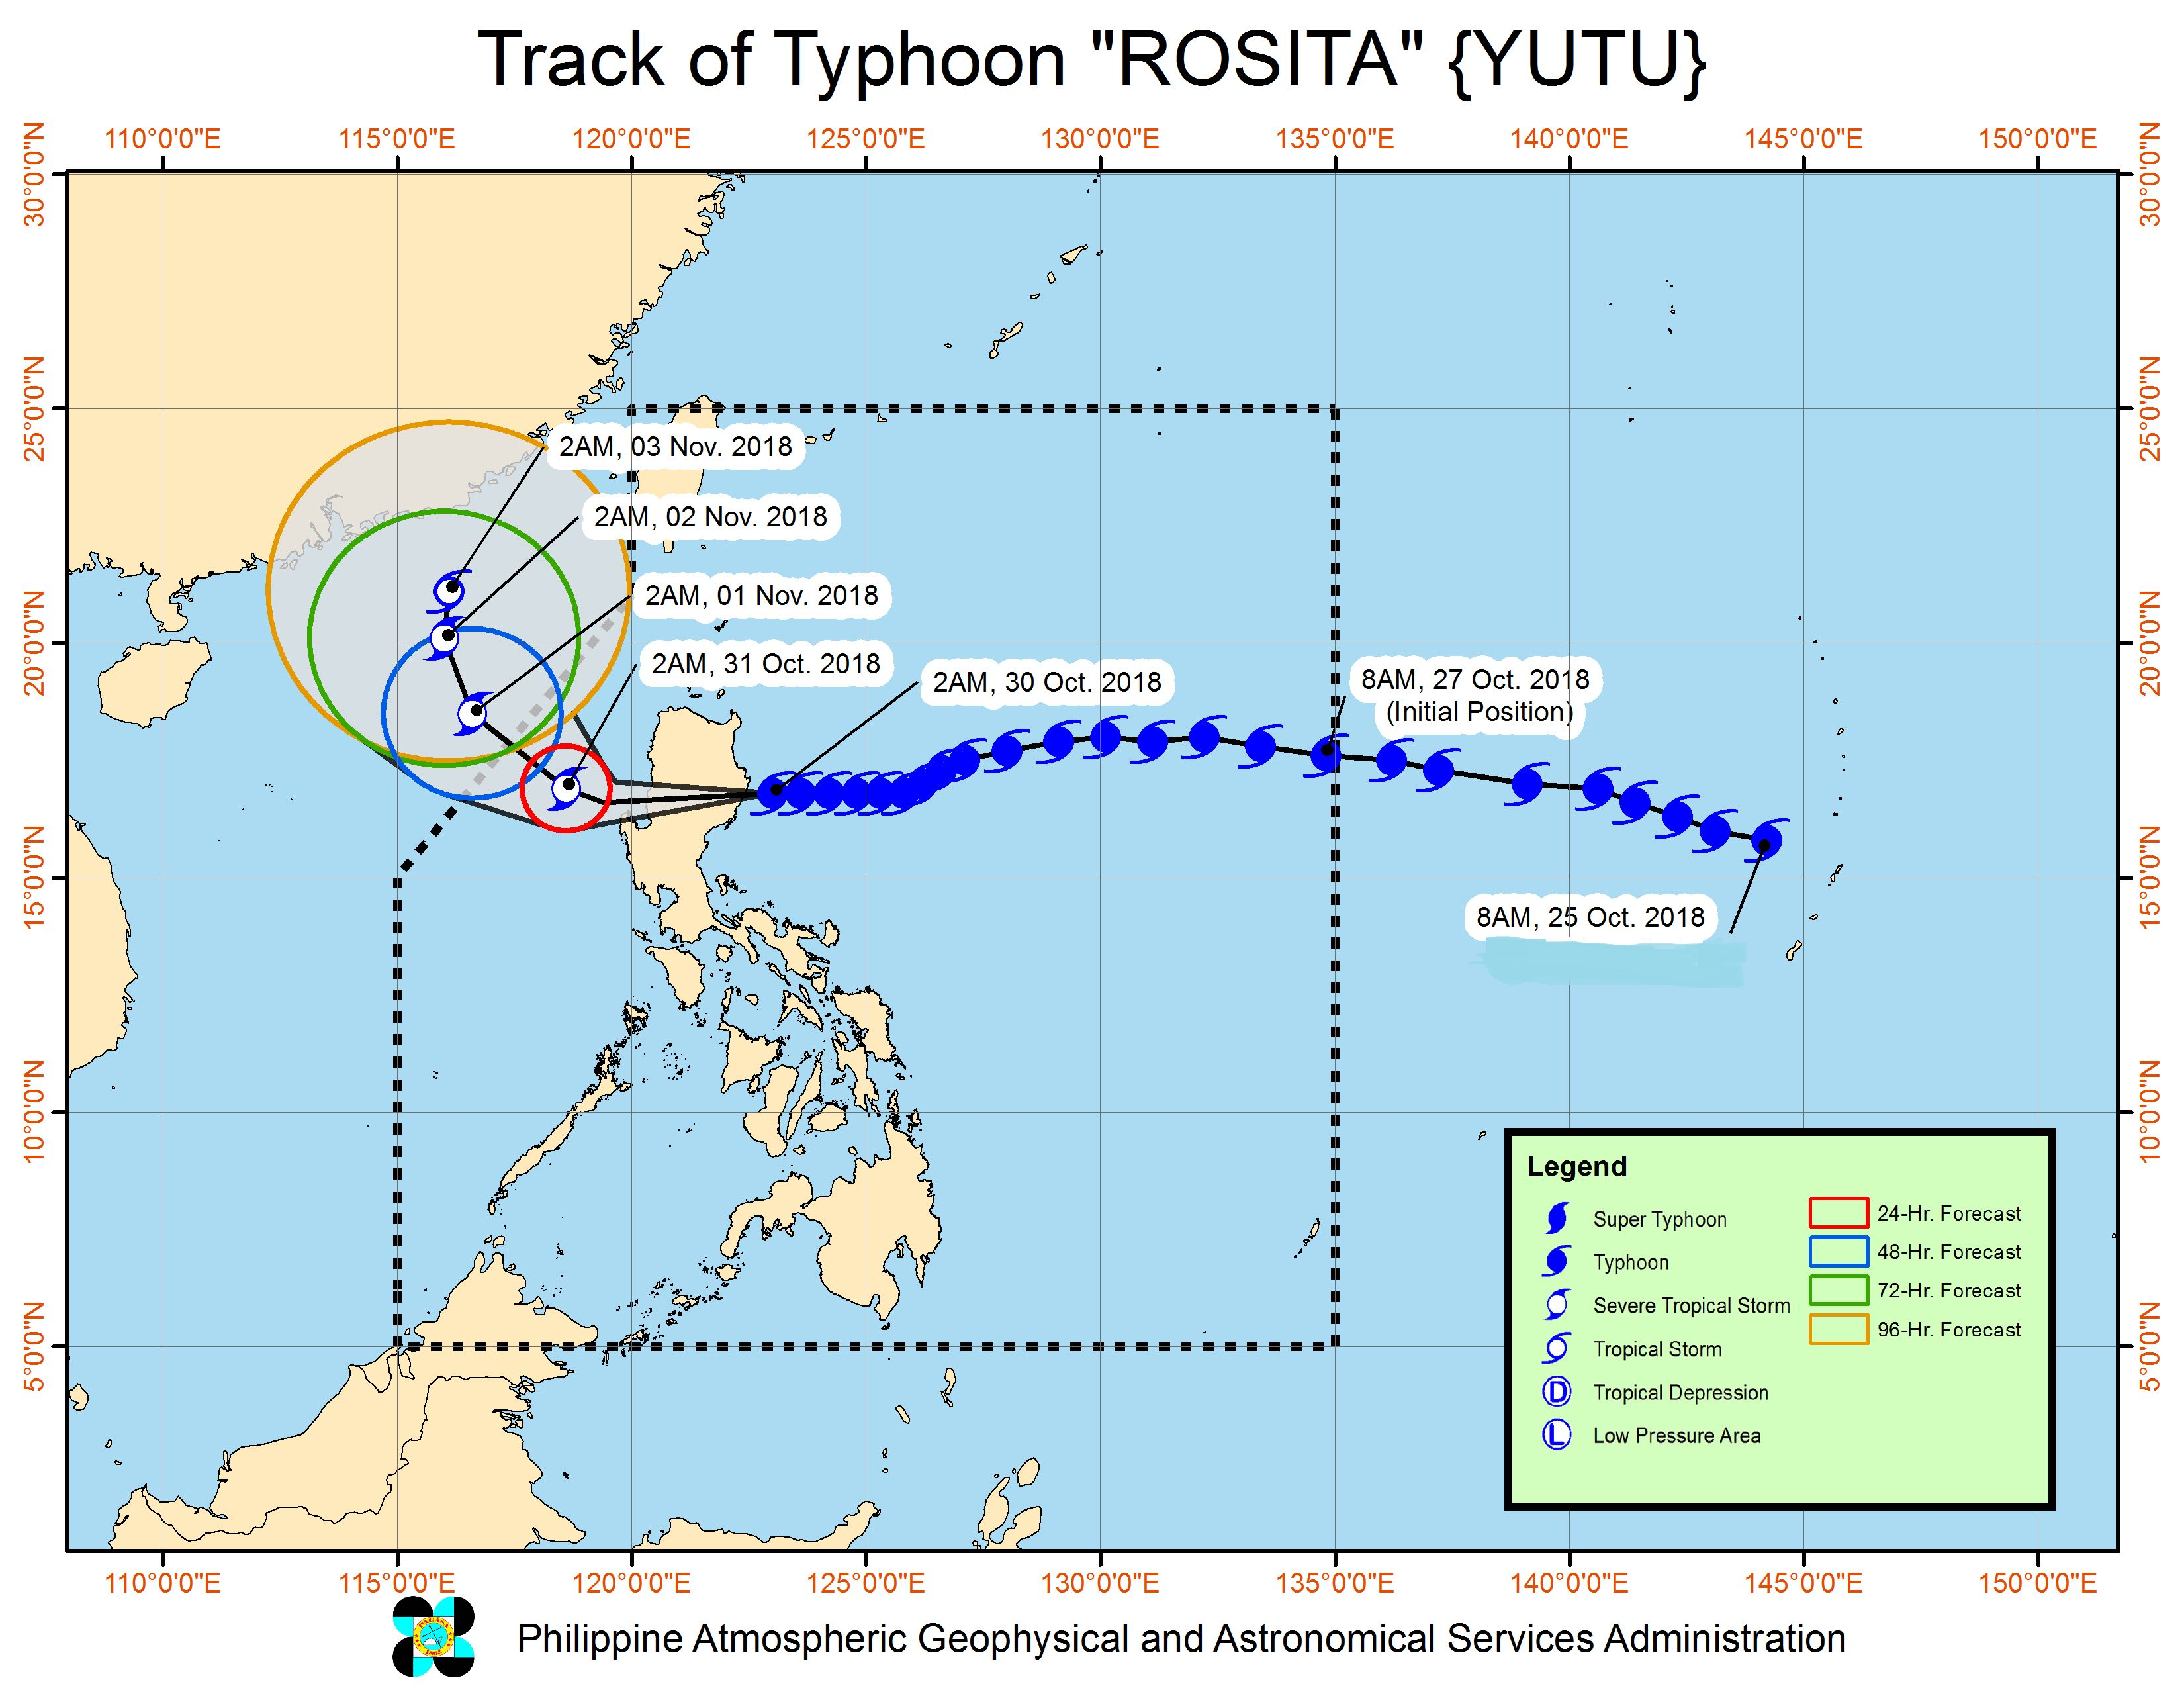 Forecast track of Typhoon Rosita (Yutu) as of October 30, 2018, 5 am. Image from PAGASA